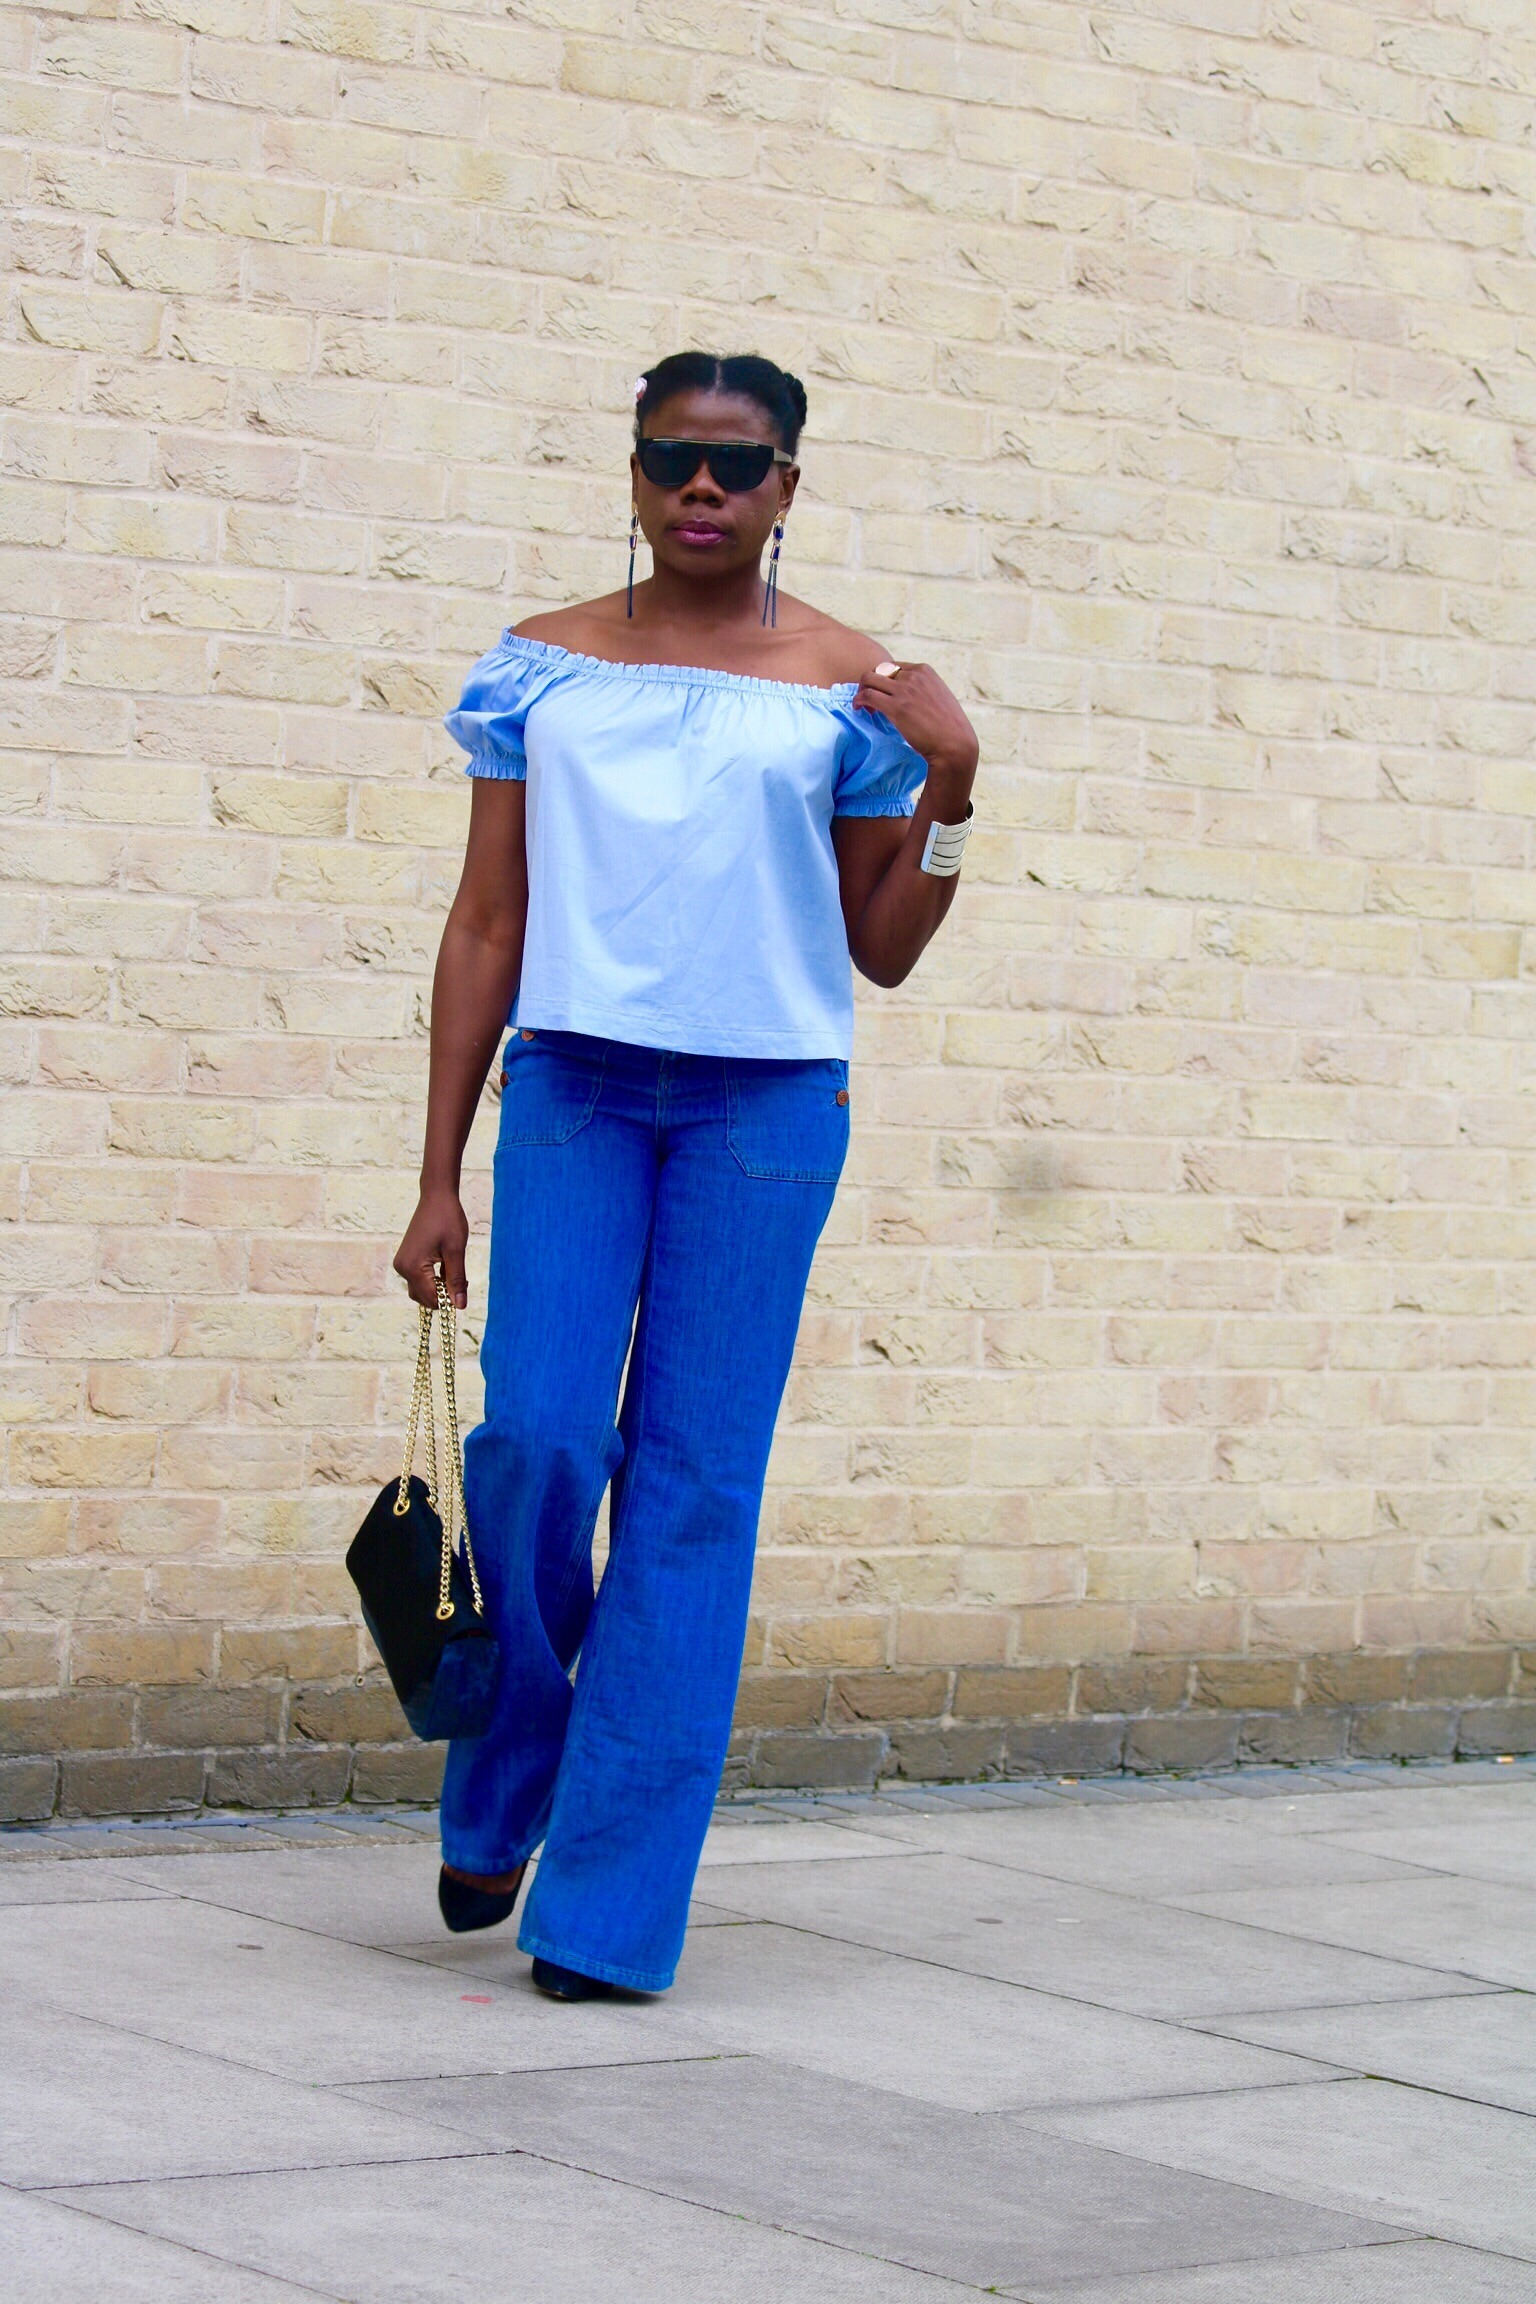 JEAN TROUSERS, MAMMYPI,CAMEROONIAN BLOGGER, FASHION BLOGGER,AFRICAN BLOGGER, NIGERIA, NIGERIAN BLOGGER,Vanessa Klat,Hand bags